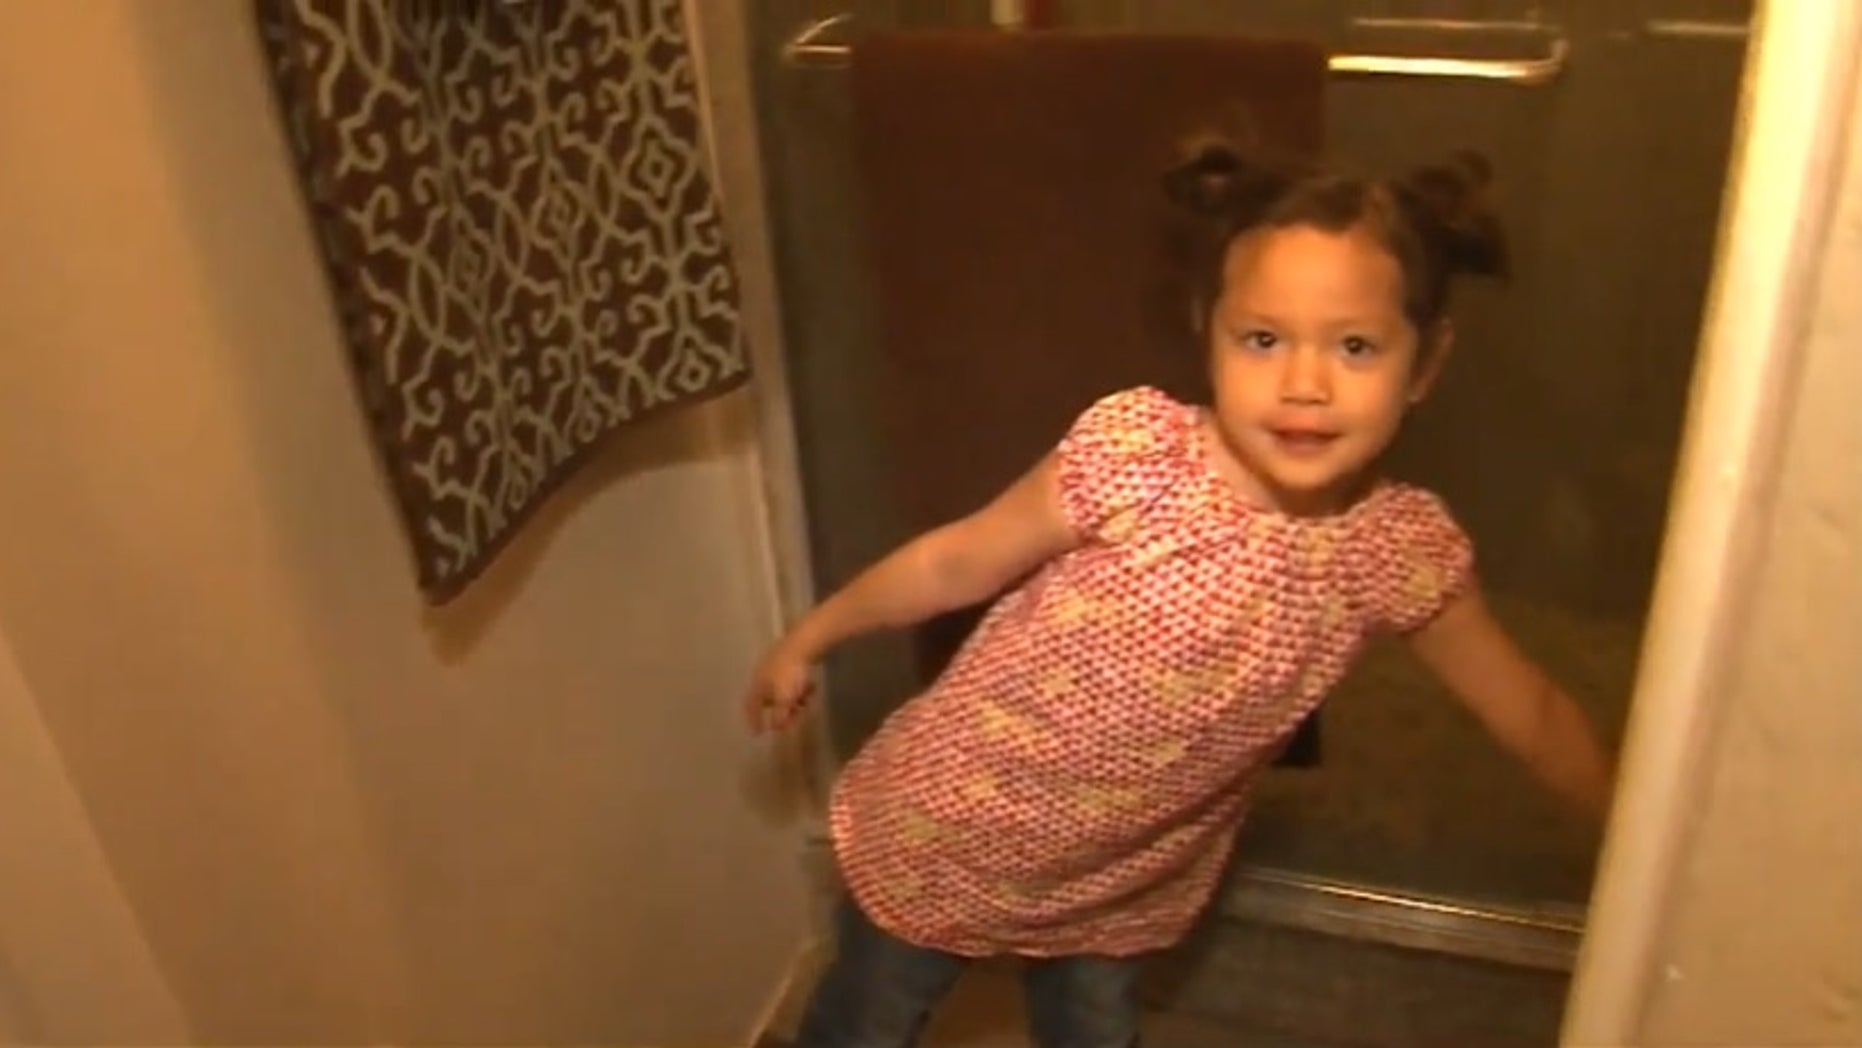 The 4-year-old girl pointing out where she hid.